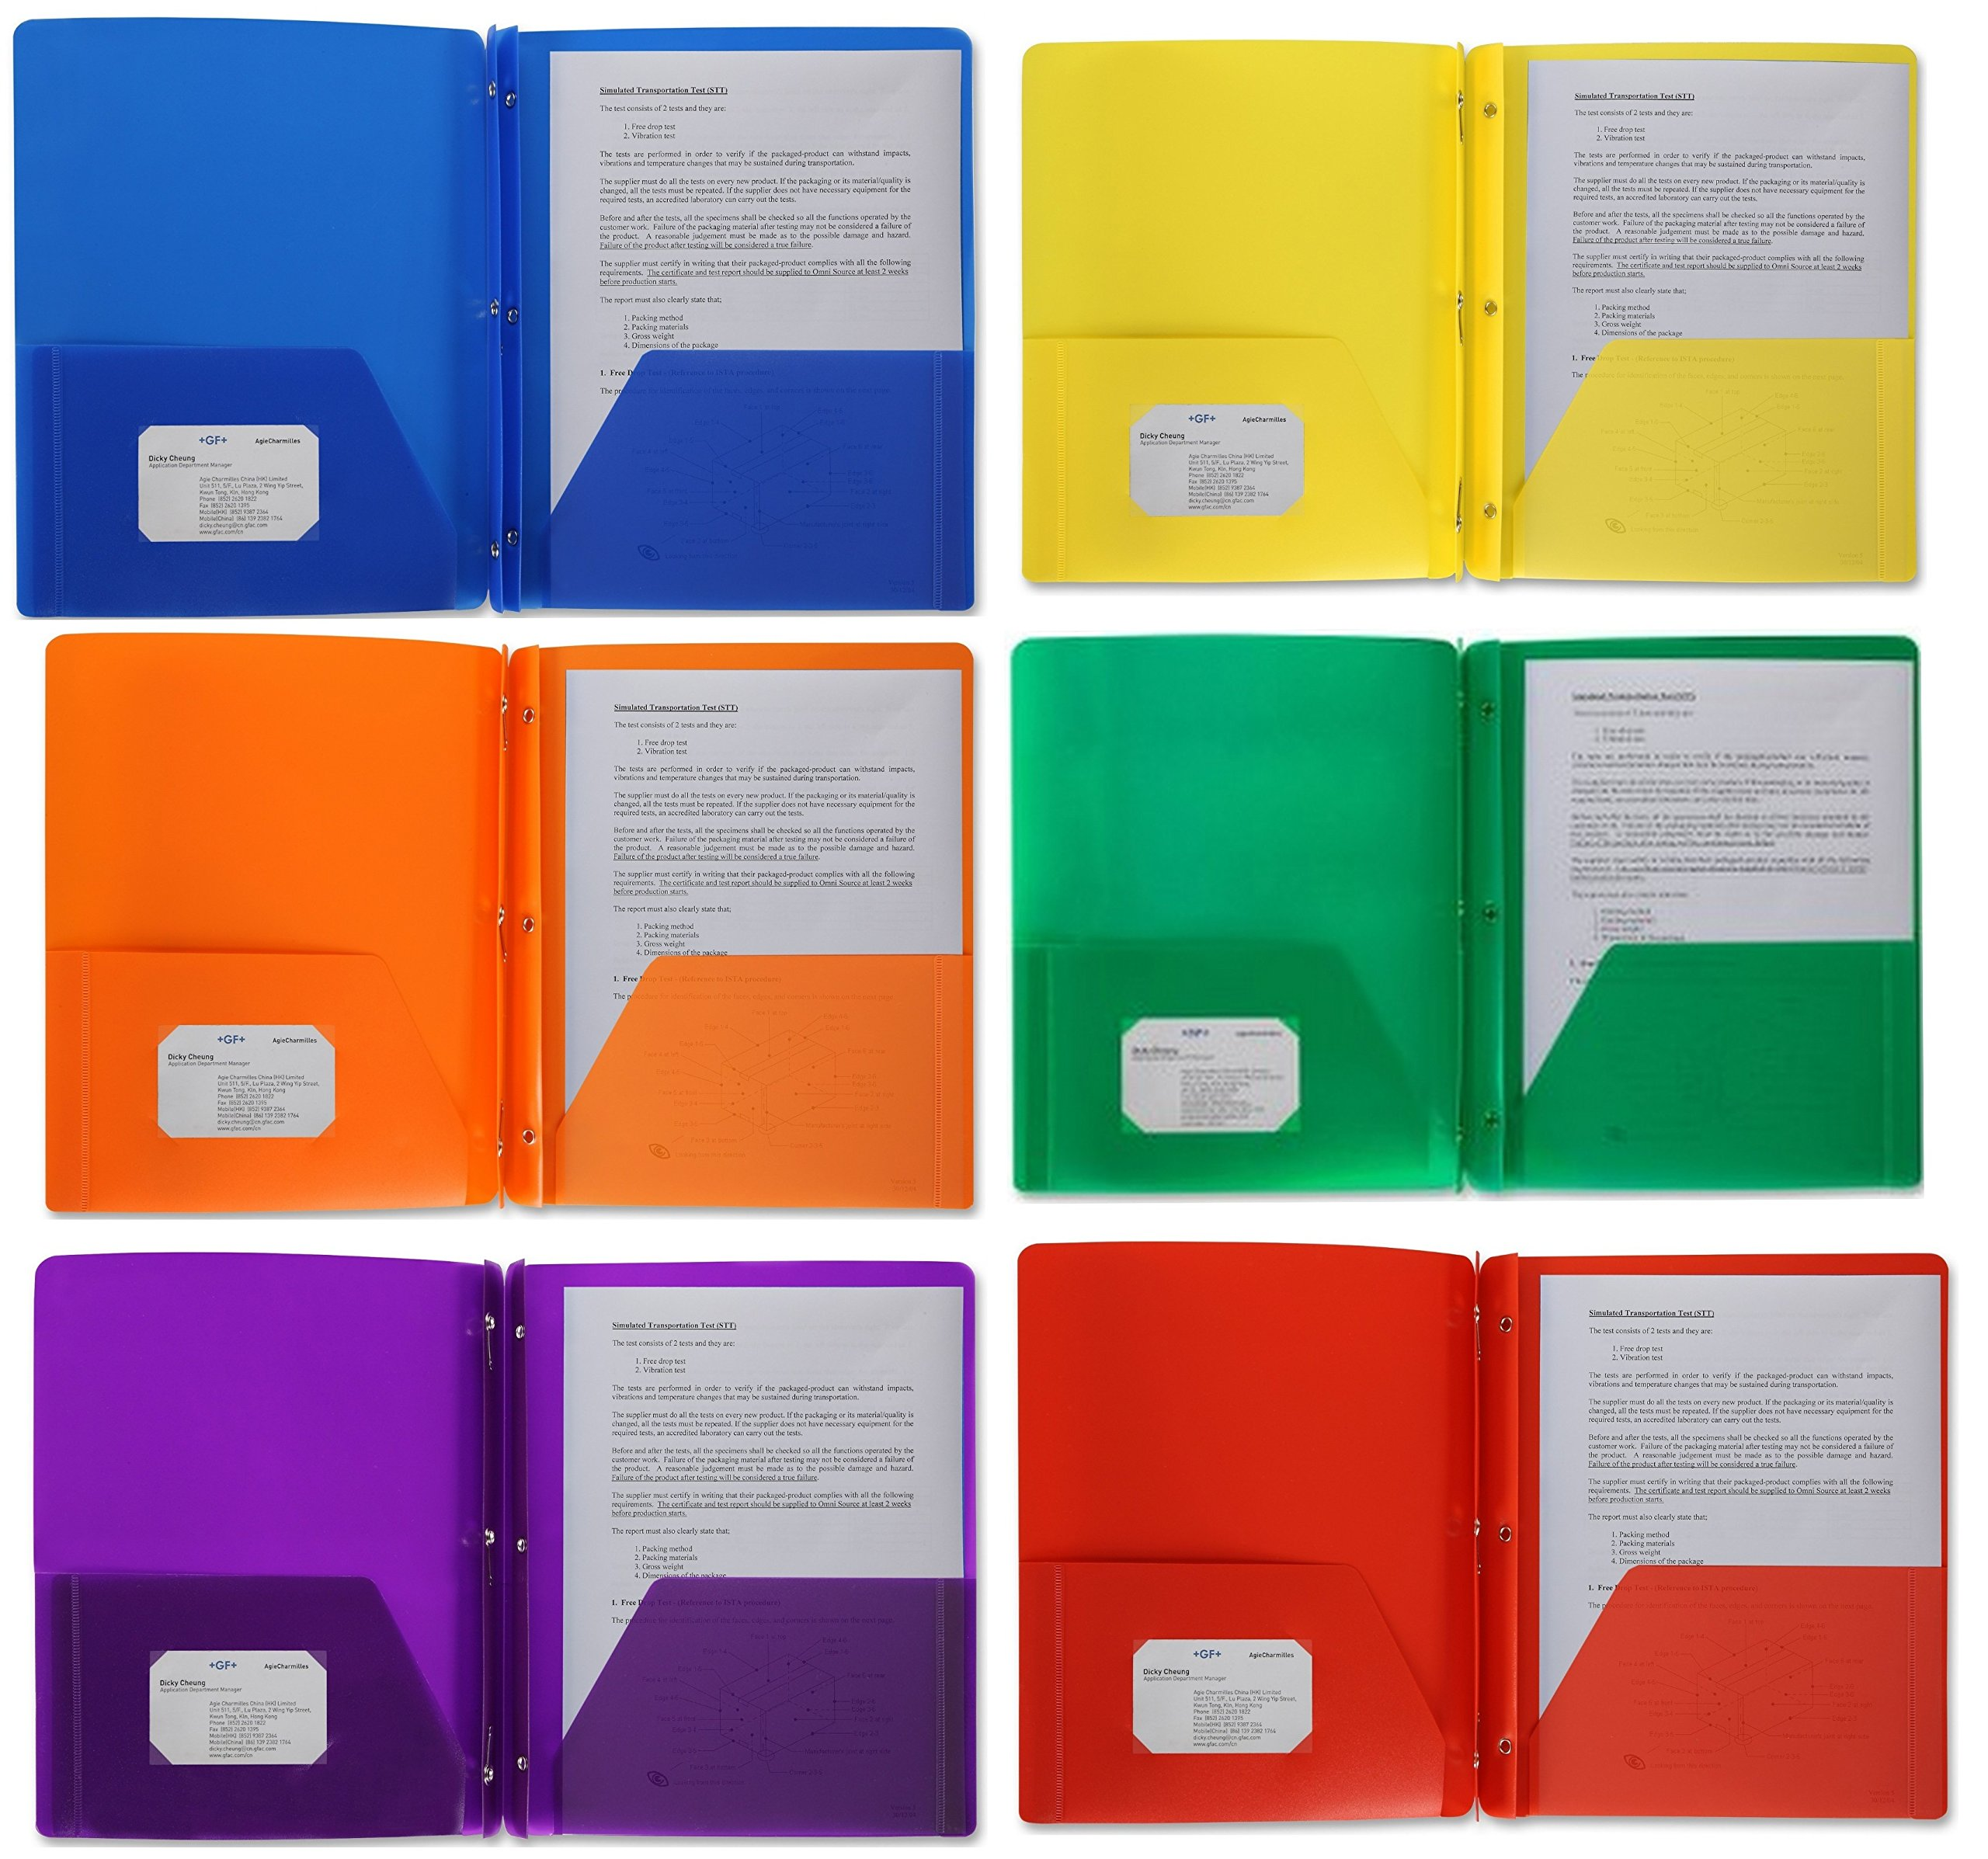 Poly Plastic Portfolio School Report Covers, 3 Hole Punched with Prongs, 8.5 x 11, Asst Colors Include Blue, Orange, Purple, Yellow, Green and Red are Durable, Spill Resistant / Water Resistant (24)